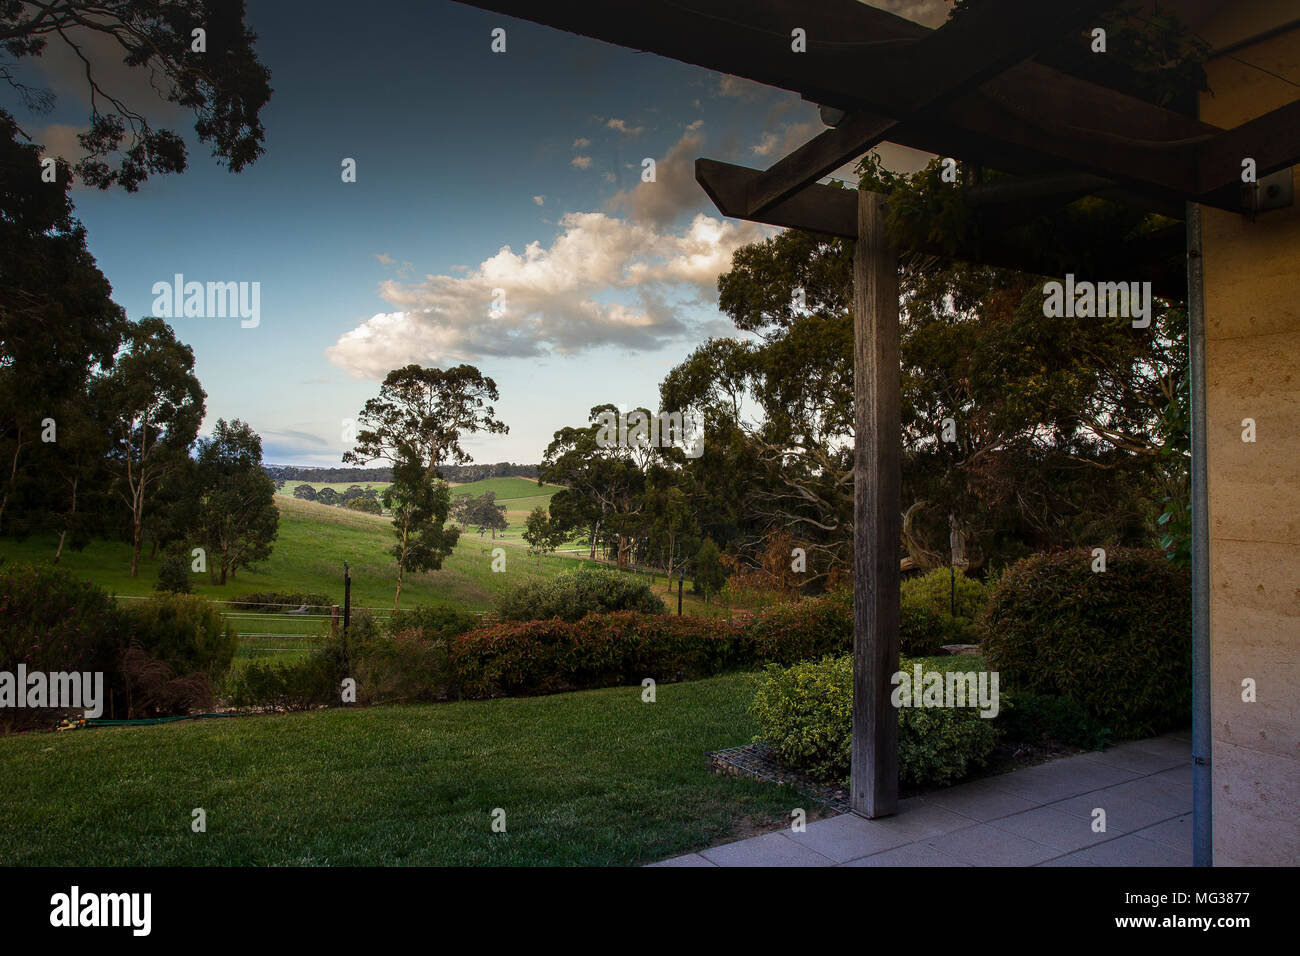 Macclesfield, Australia. 25th, Oct 2017.  House in Macclesfield, view of domestic garden, in the Adelaide Hills region, in the District Council of Mou Stock Photo